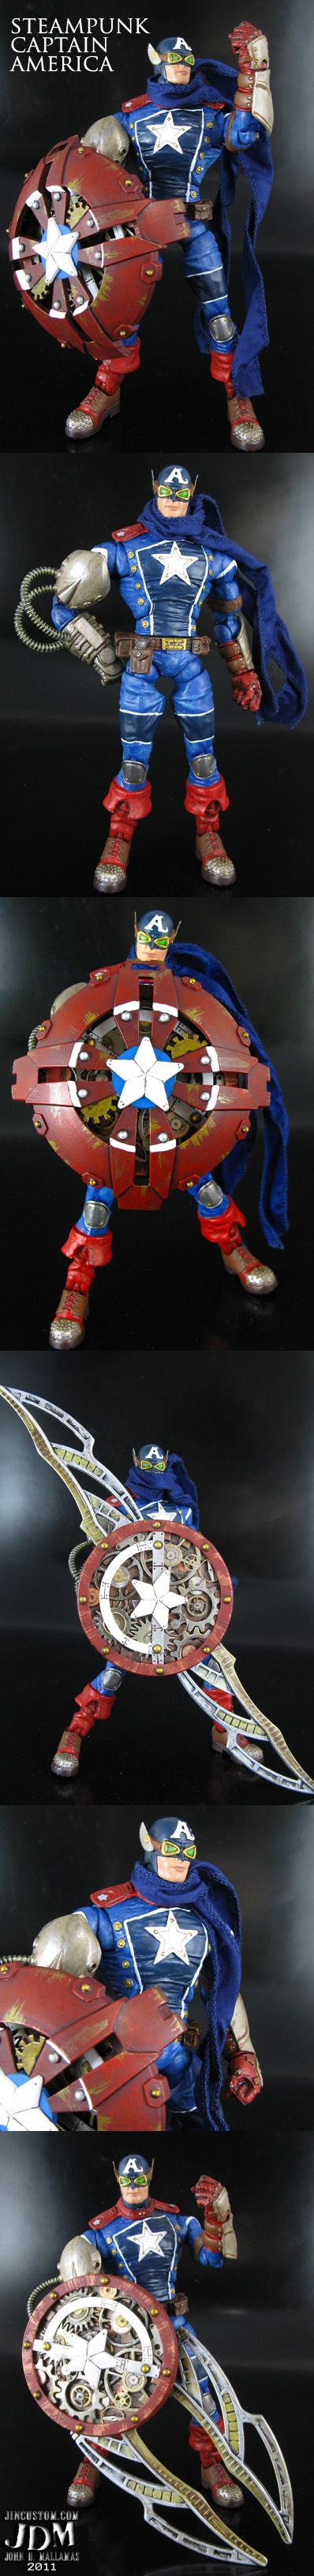 Steampunk Captain America action figure by *Jin-Saotome on deviantART | Follow here http://pinterest.com/cakespinyoface/geekery/ for even more Geekery-- art, tech and more!